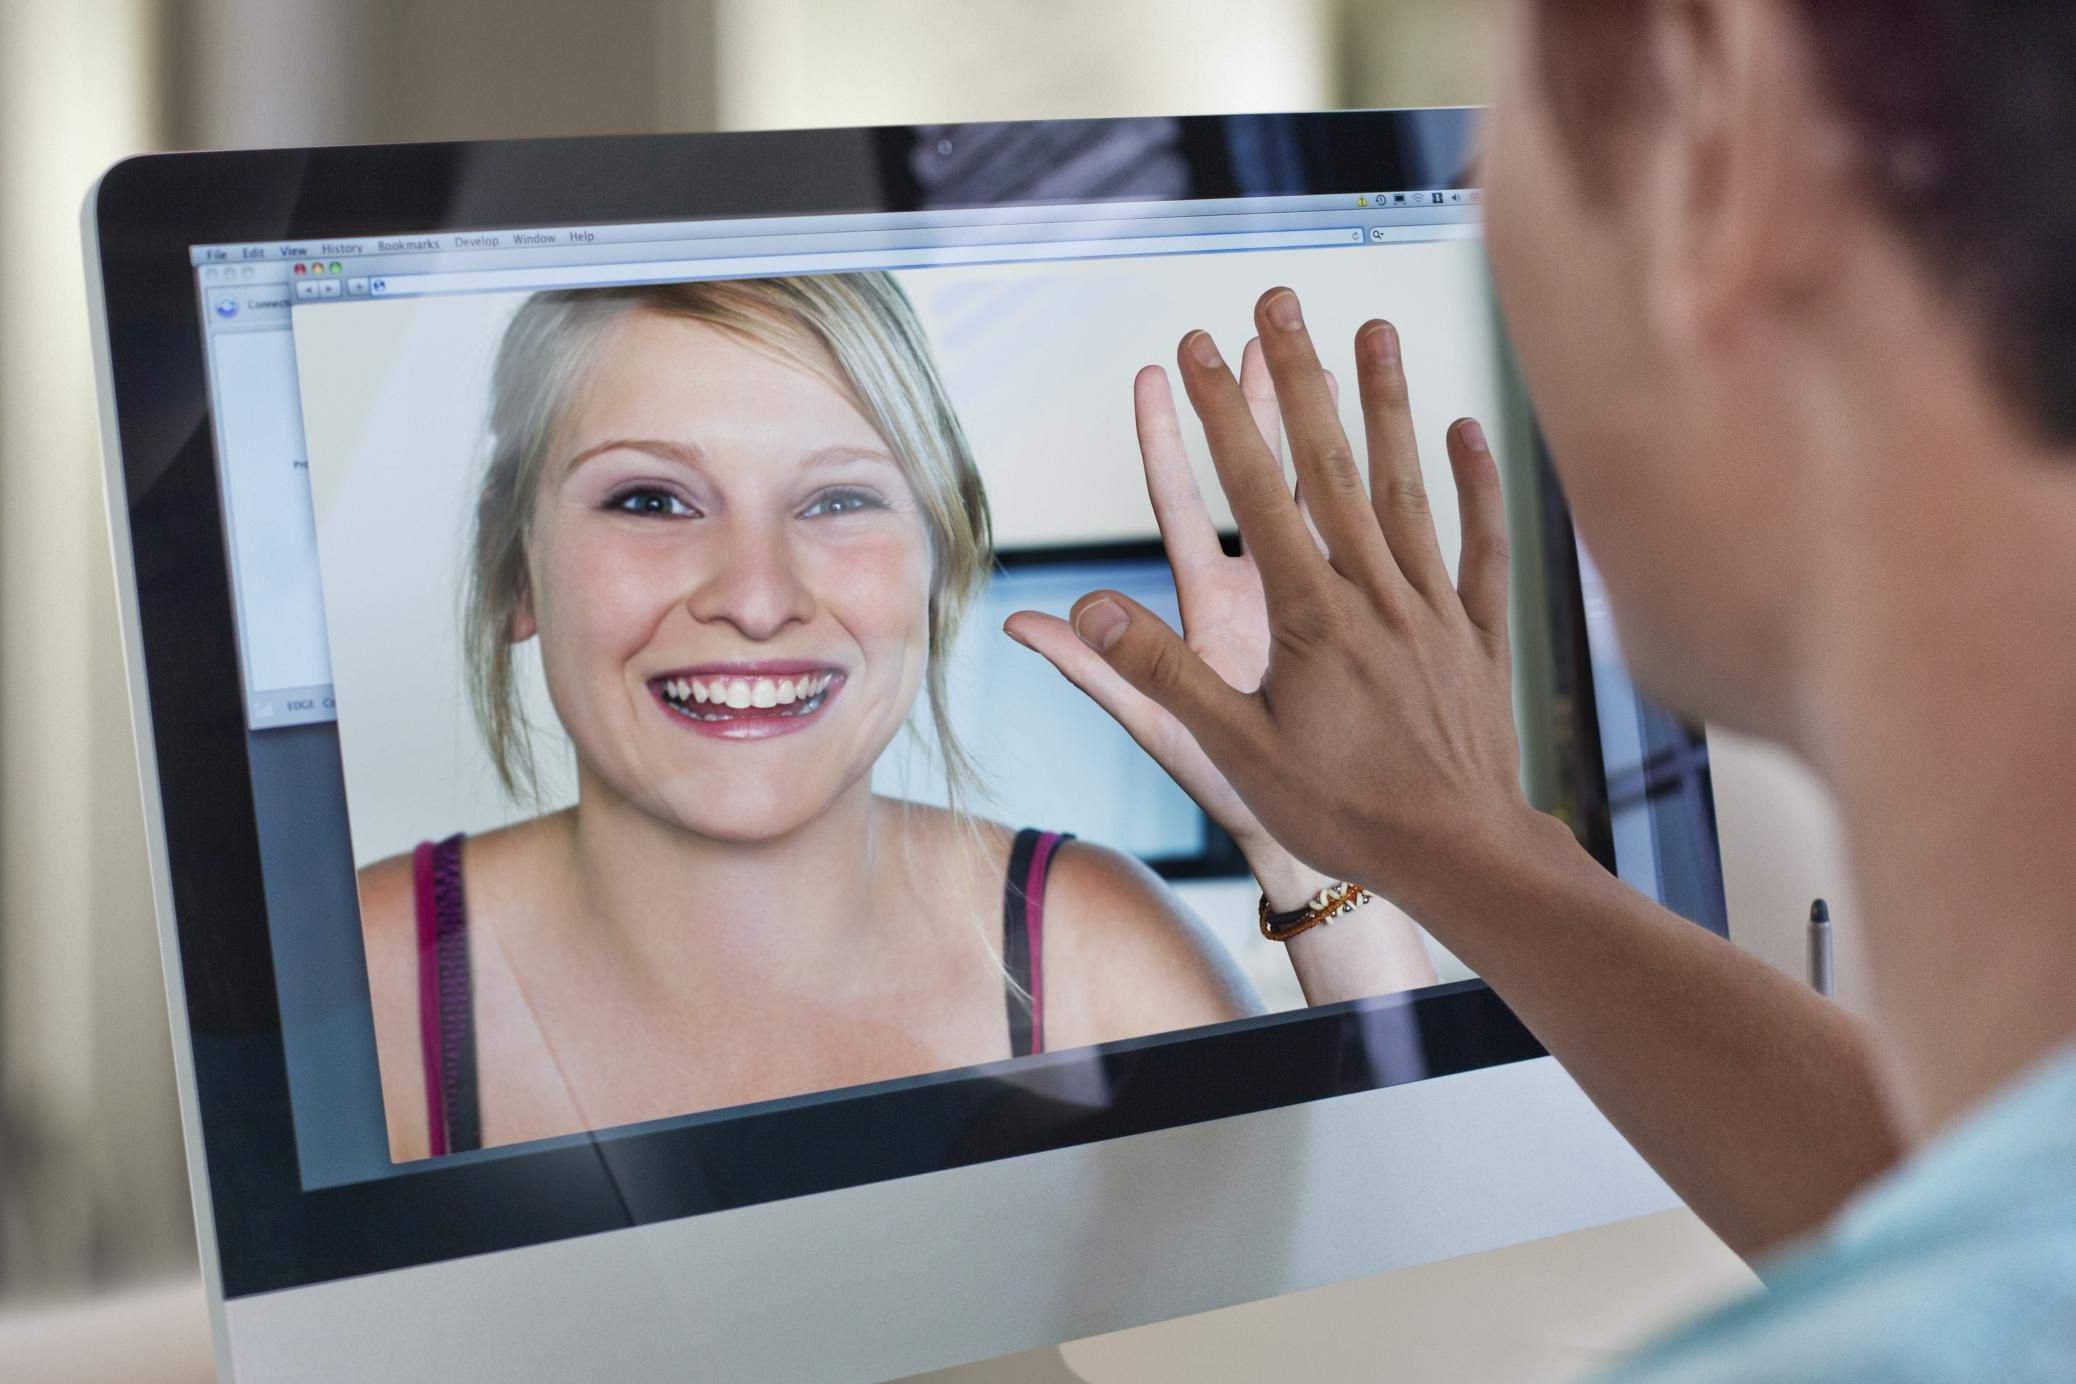 Human interaction through video conferencing